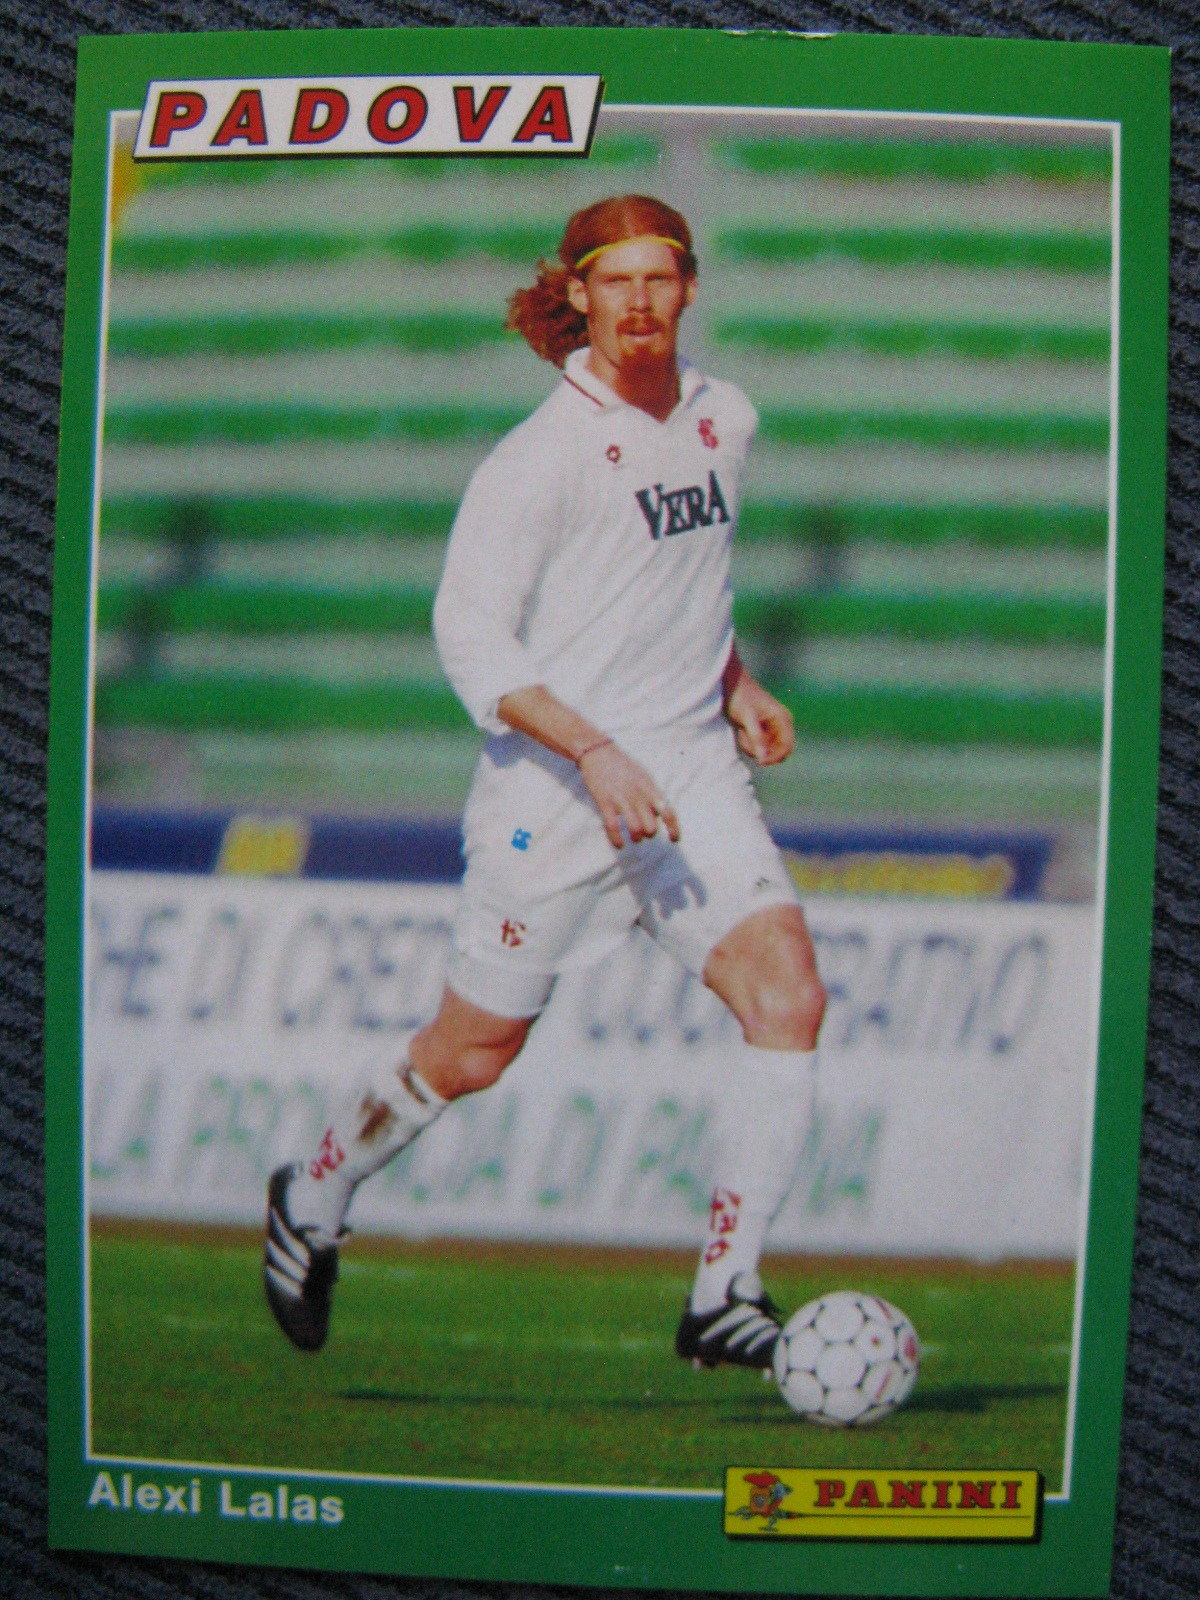 #AmericanAbroad Alexi Lalas, during his time with Padova.